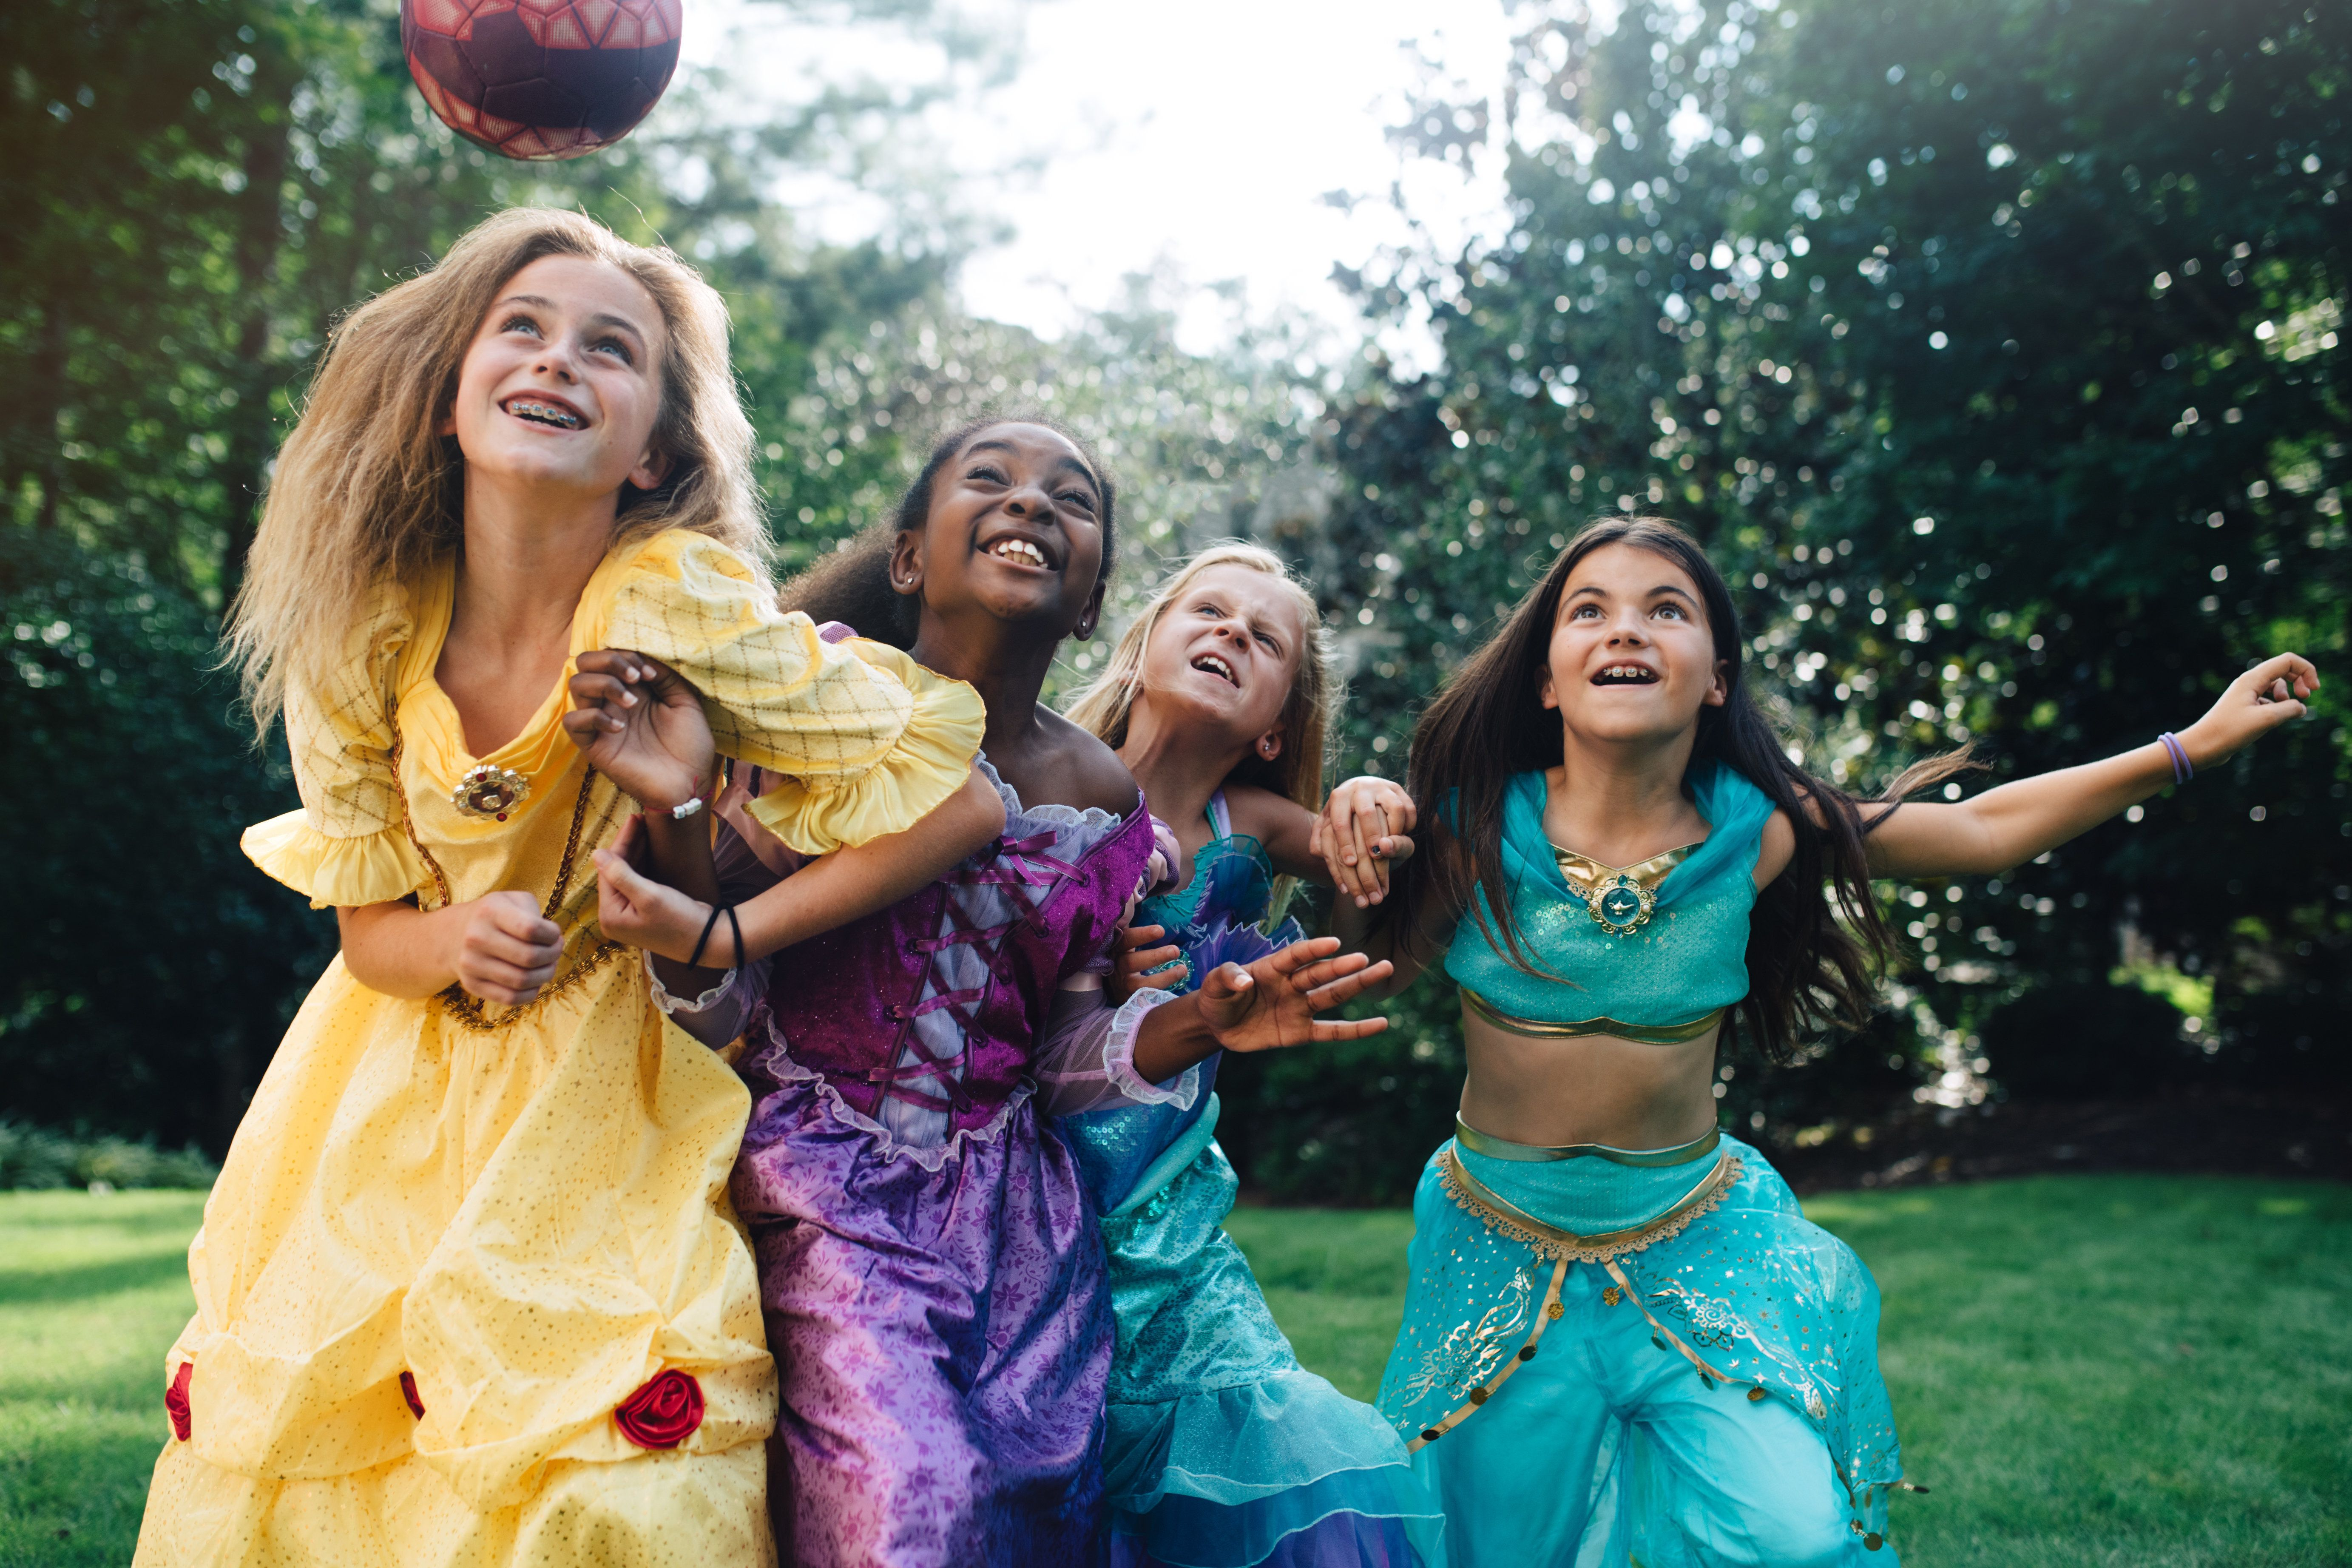 Disney's new project for its #DreamBigPrincess campaign highlights girls being fun, fierce and fearless.